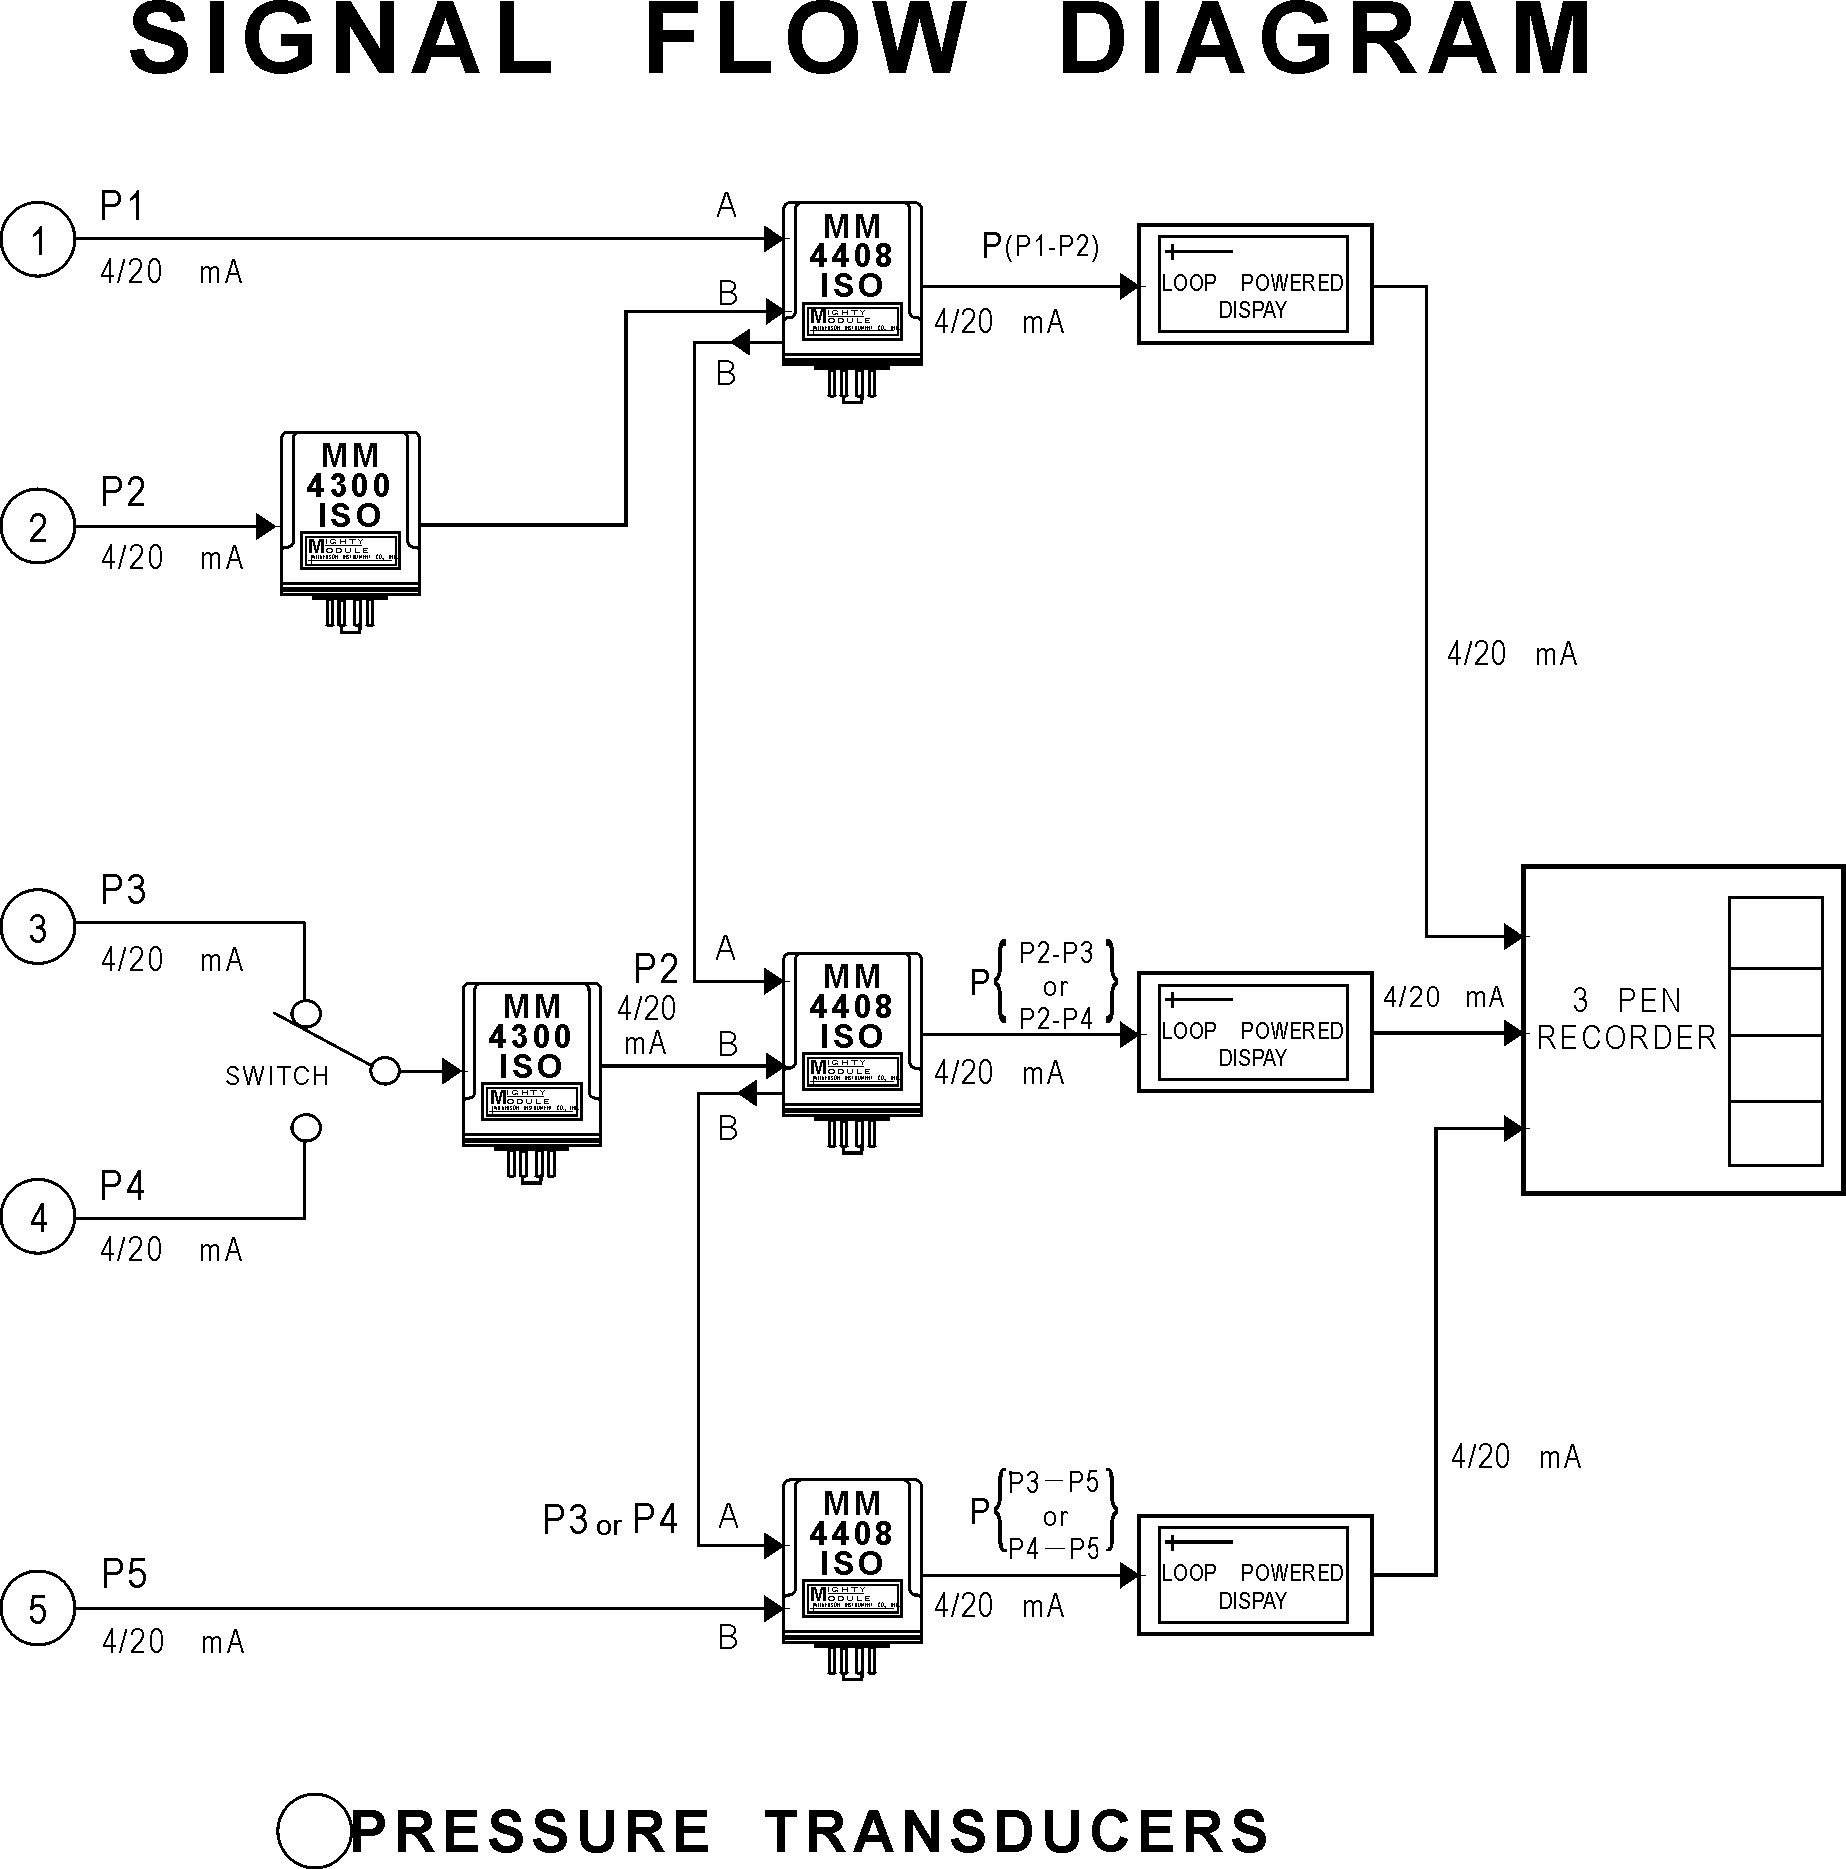 900 signal stat wiring diagram